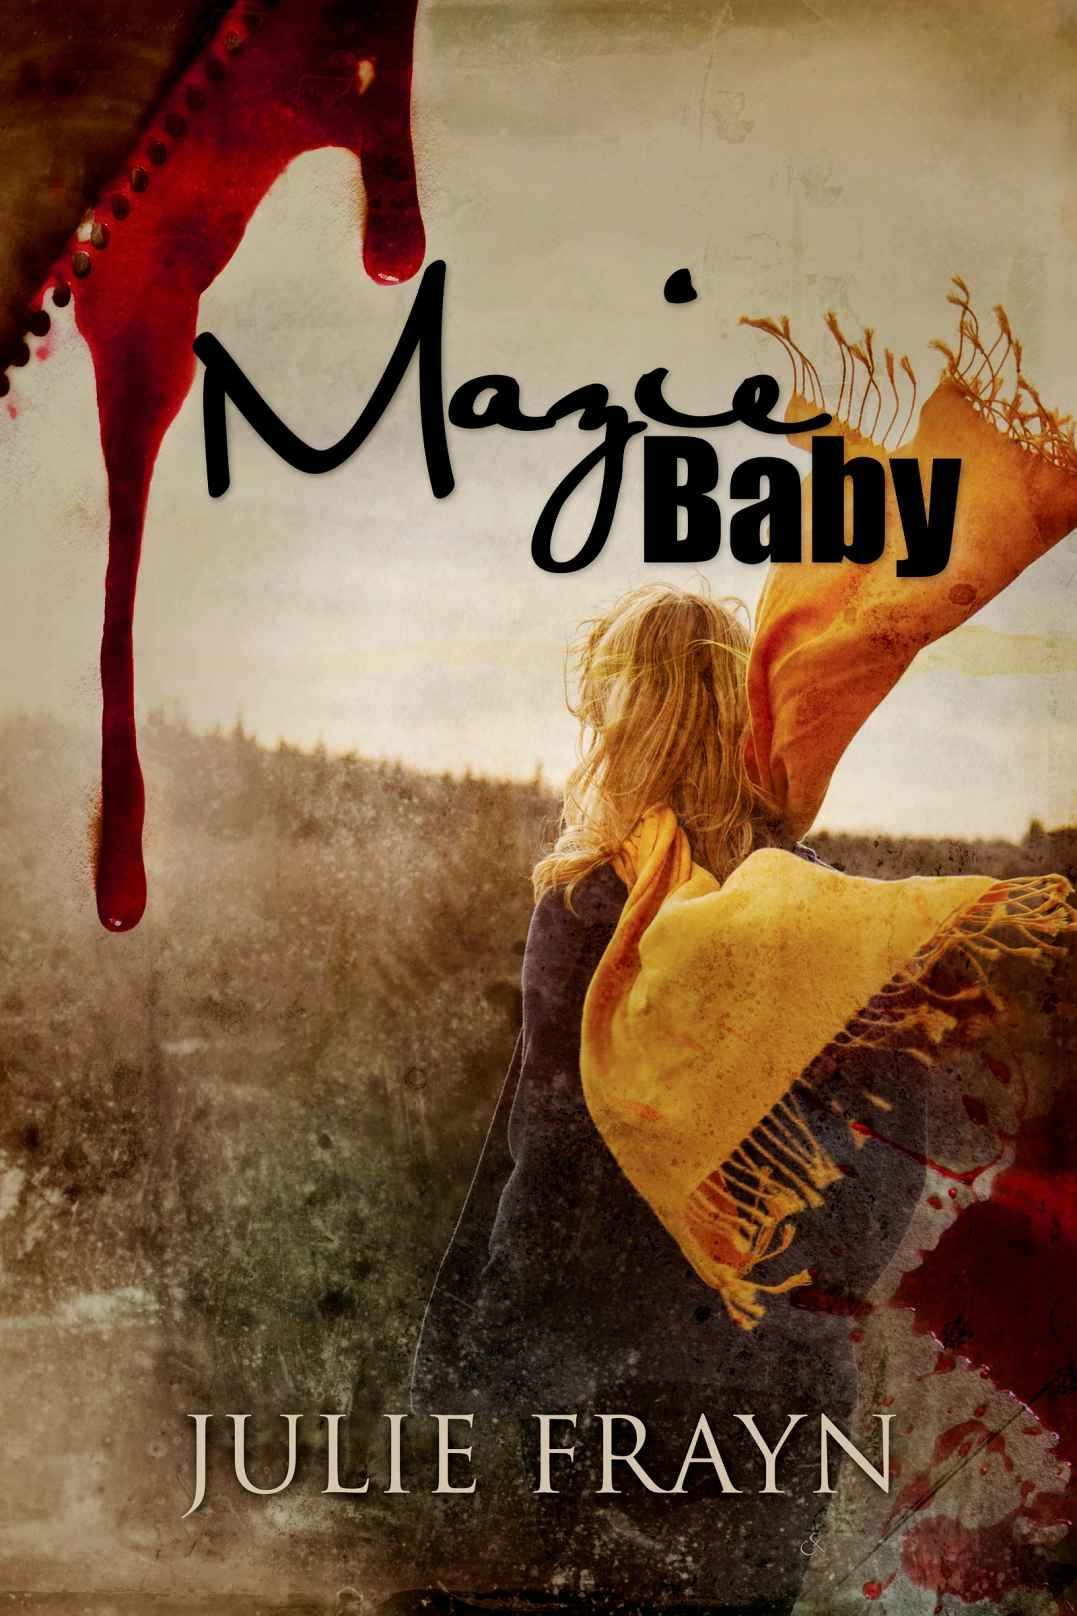 Mazie Baby, by Julie Frayn. An easy read, shared by my mom. Interesting to read about the Canadian locations in the book. Graphic, too.